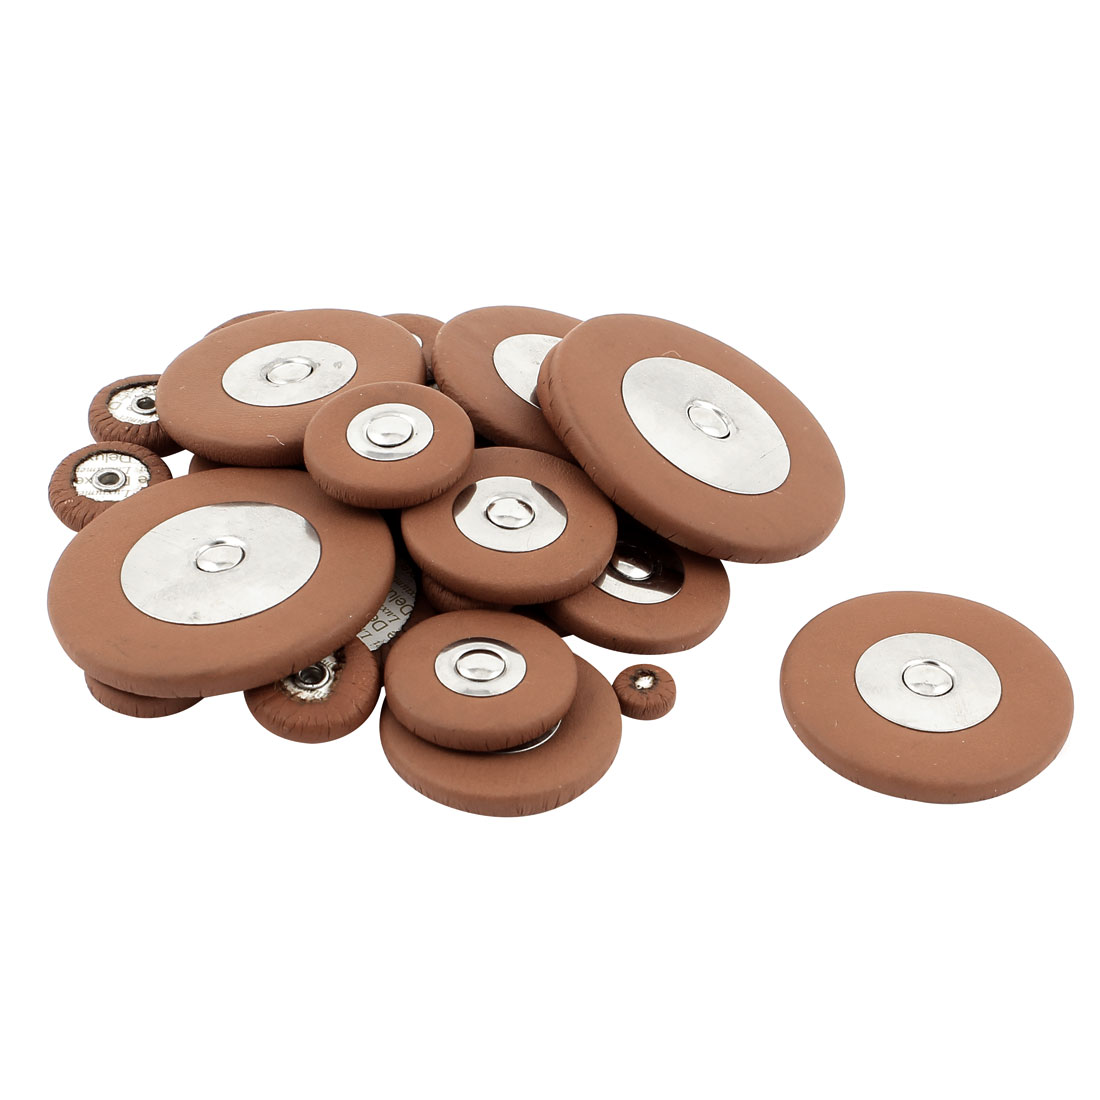 New 25pcs 14Sizes Coffee Color Faux Leather Alto Saxophone Sax Pads Assortment Kit